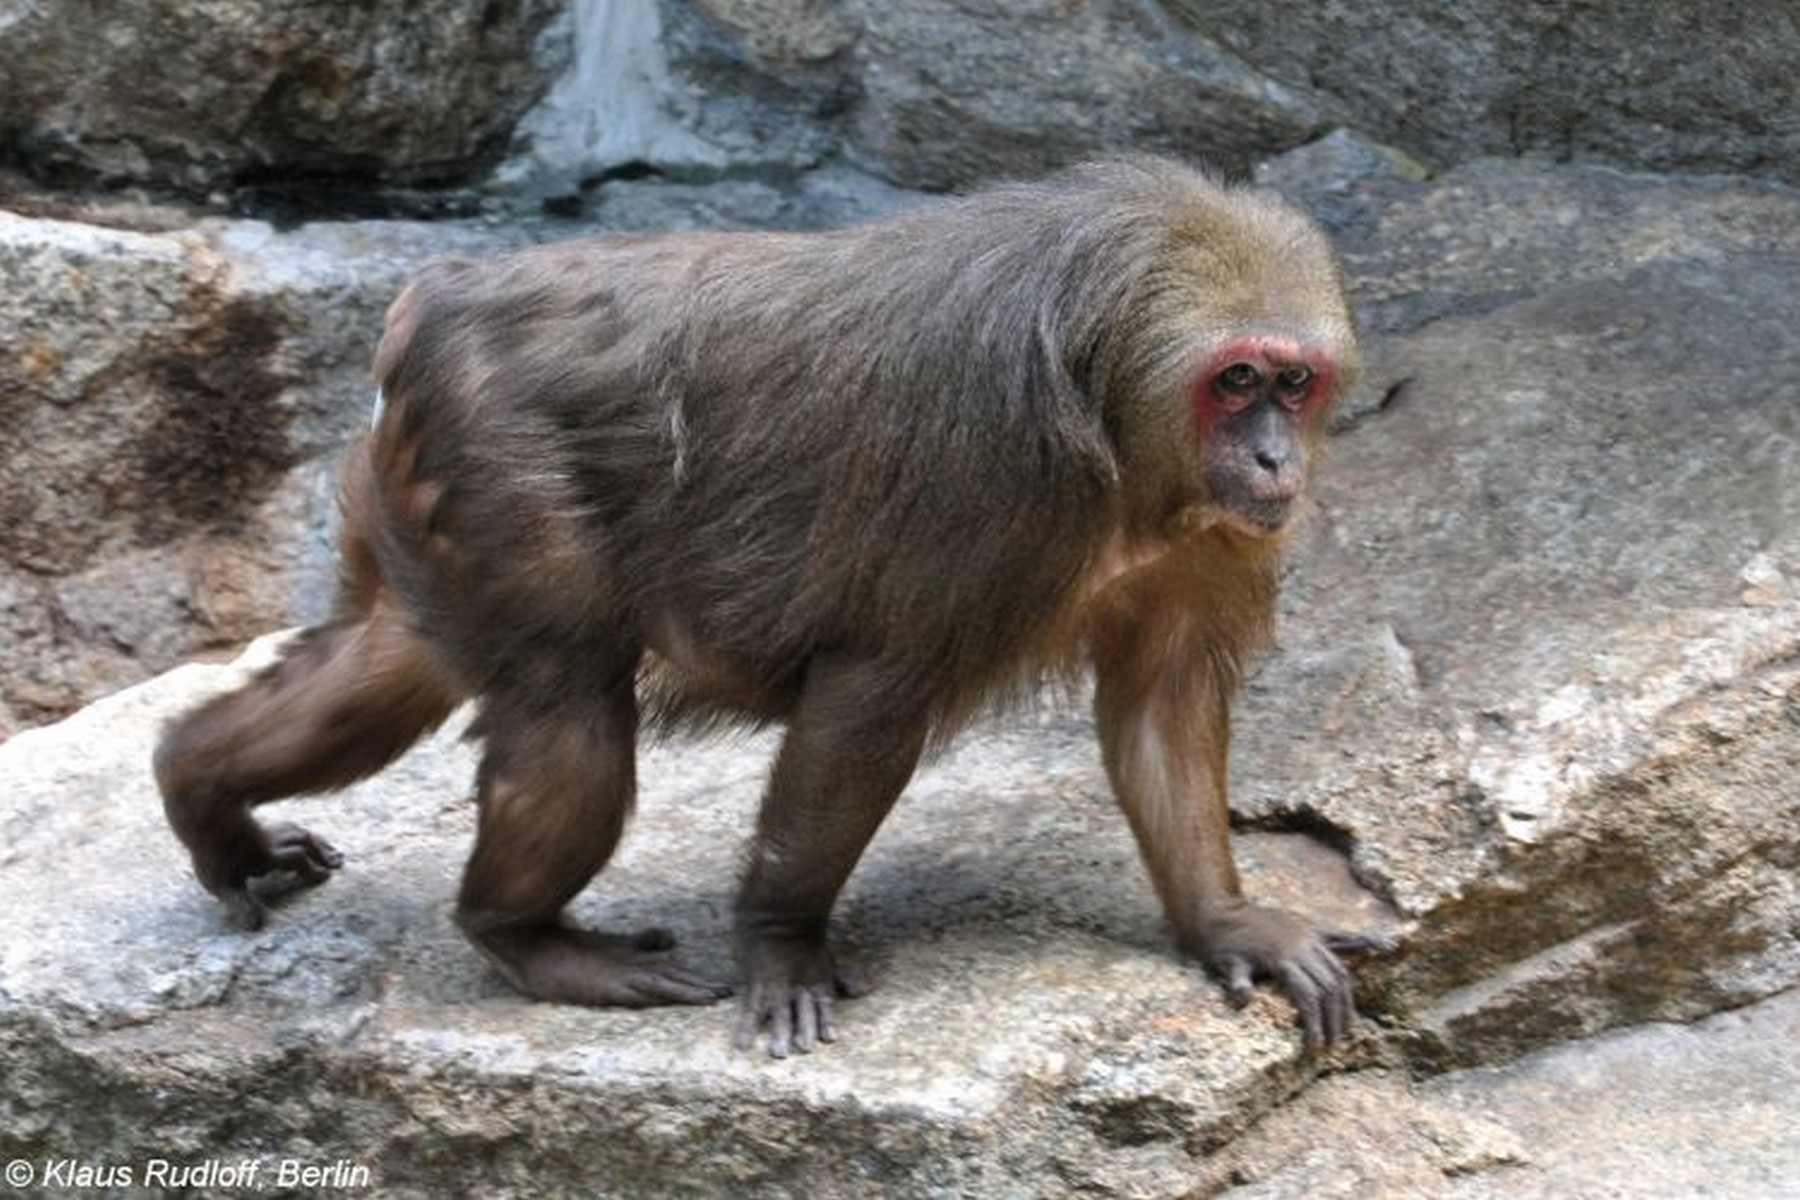 Stump tailed macaques